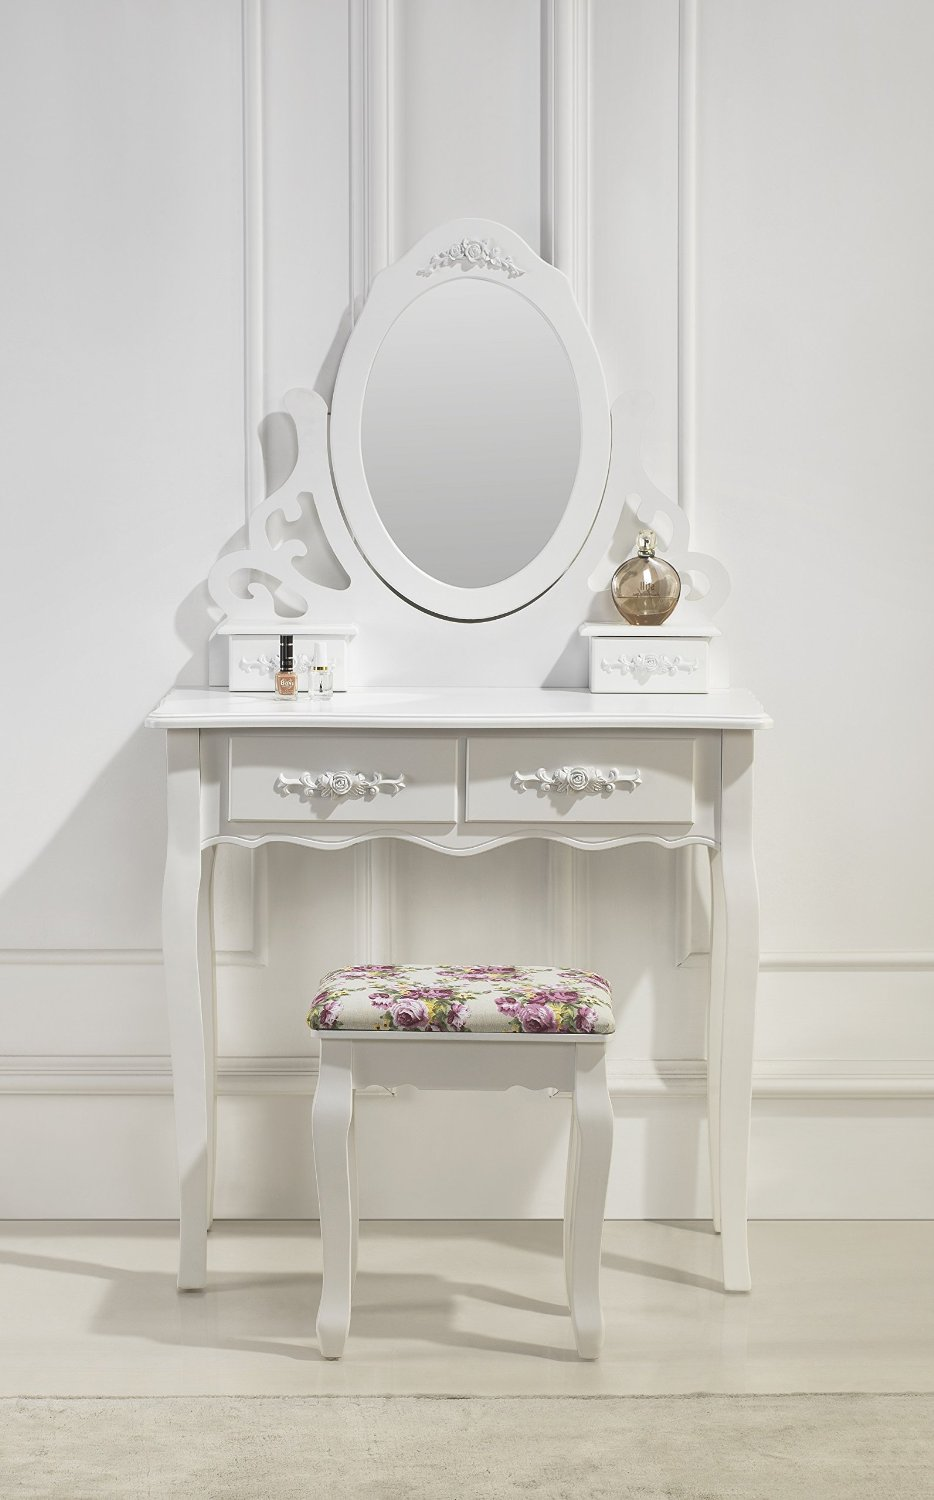 Excellent Coiffeuse Chambre With Coiffeuse Blanche Moderne